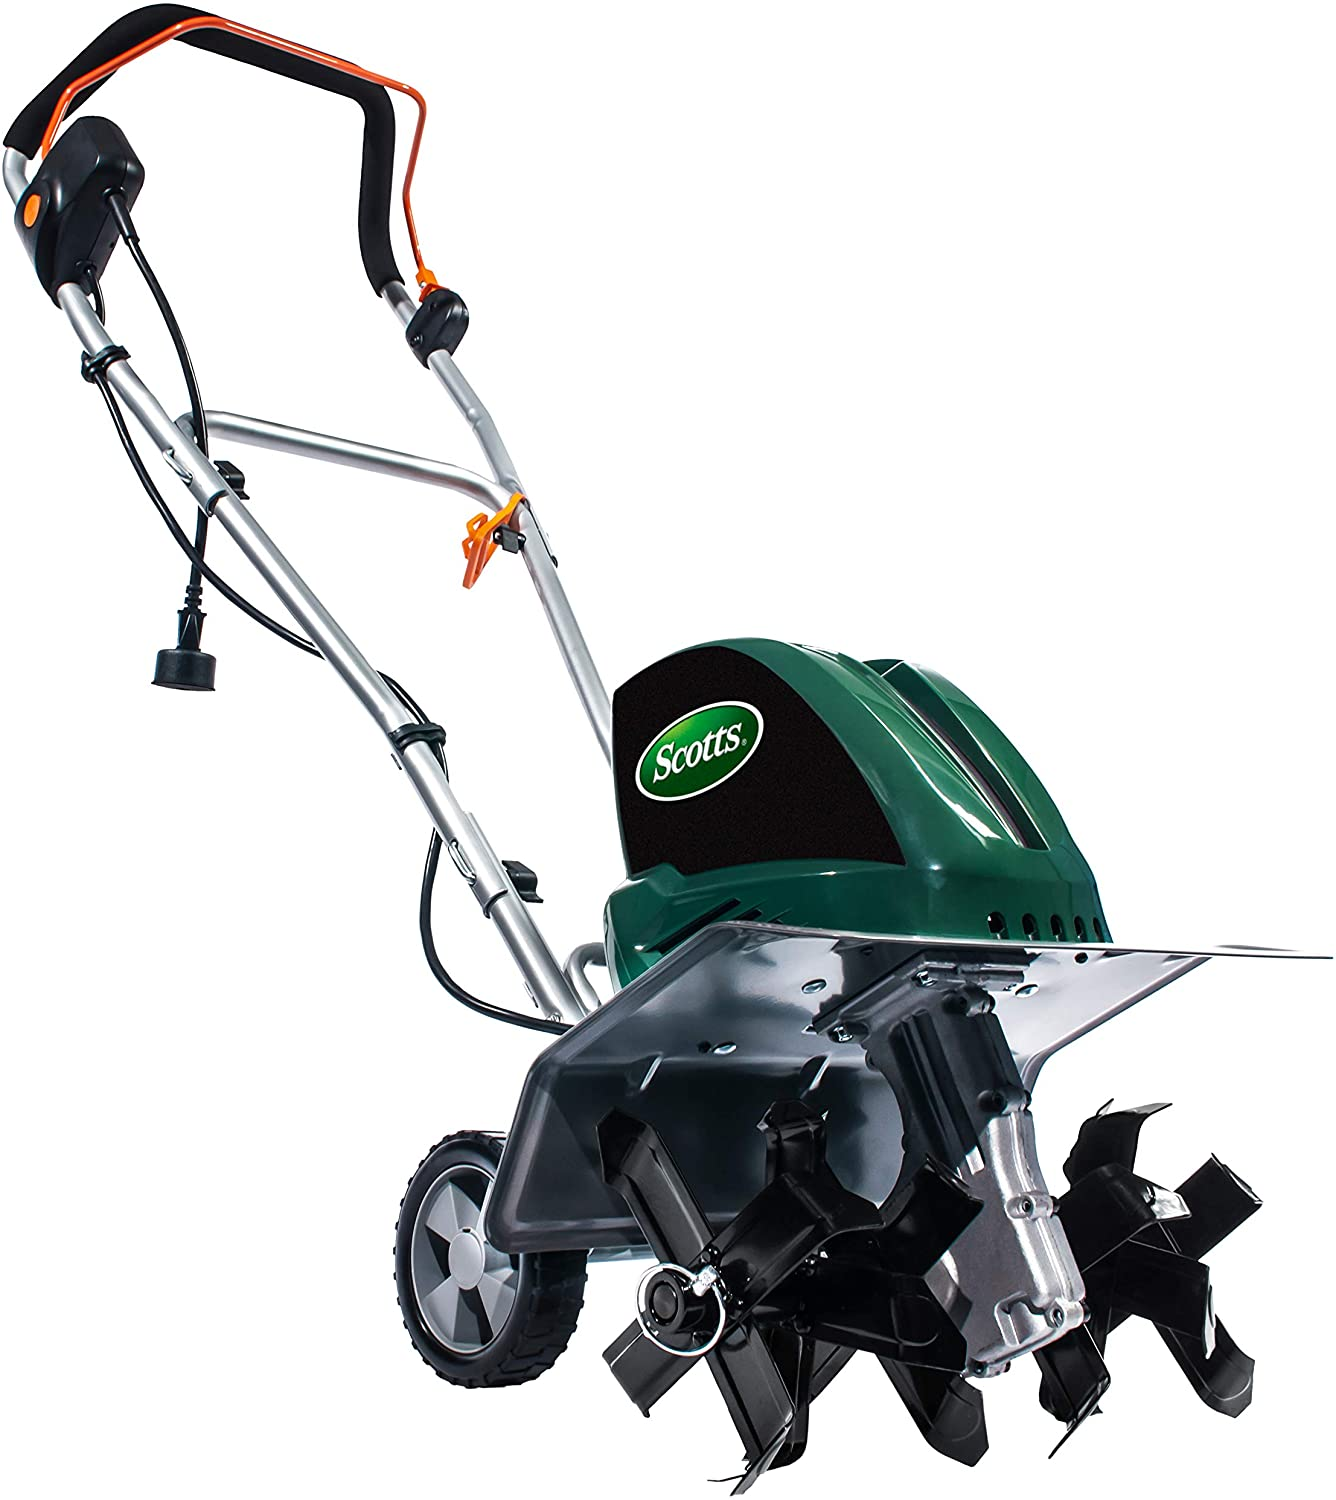 Scotts Outdoor Power Tools TC70135S Electric Tiller